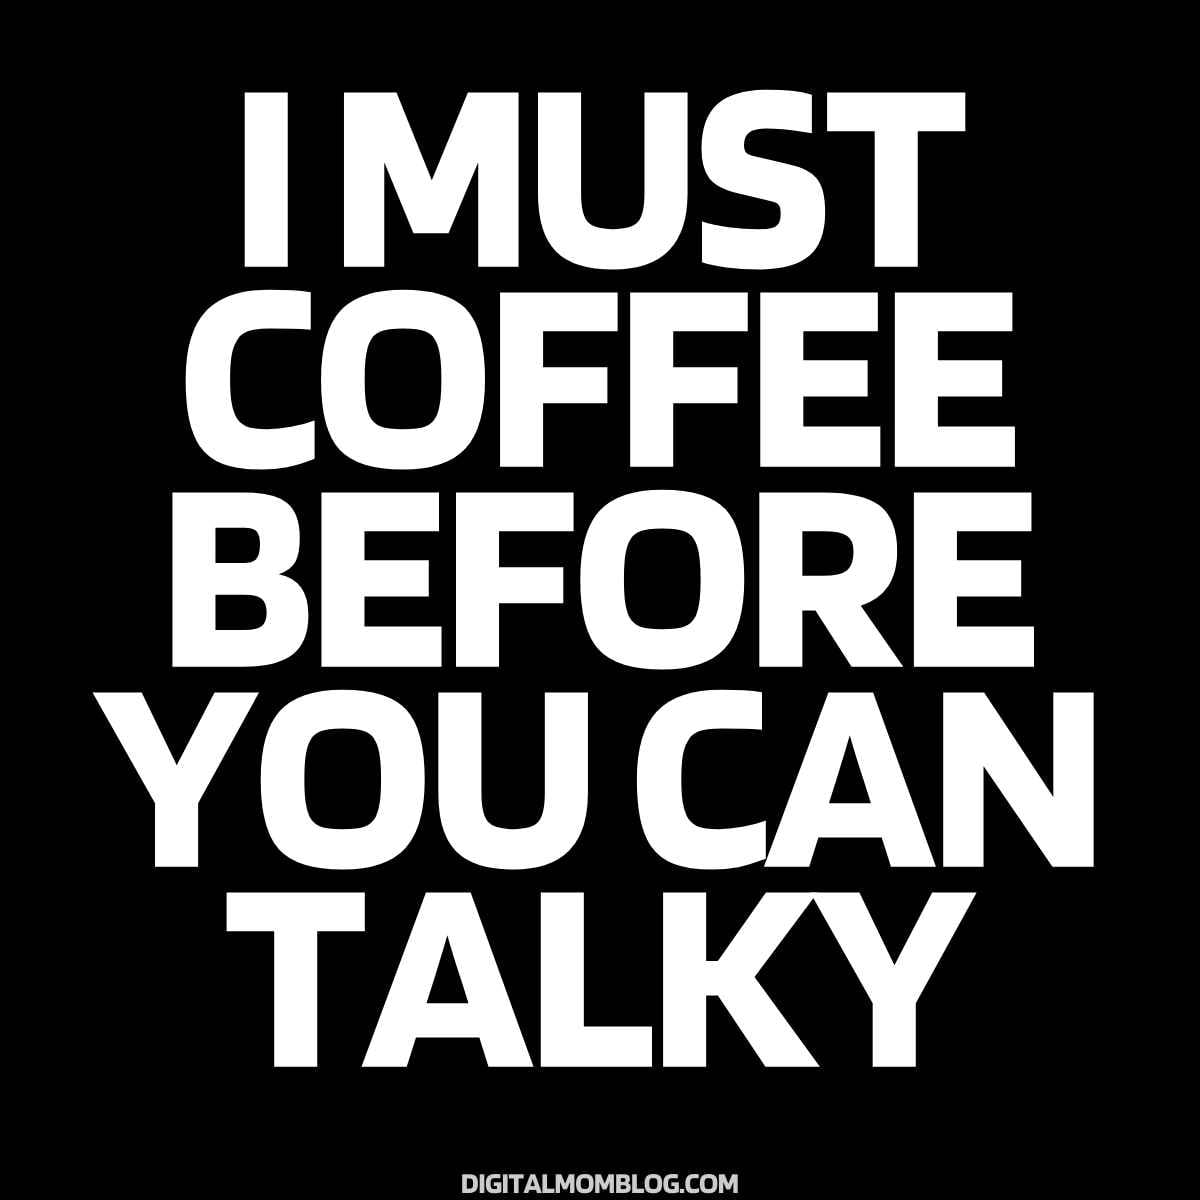 i must coffee before talky